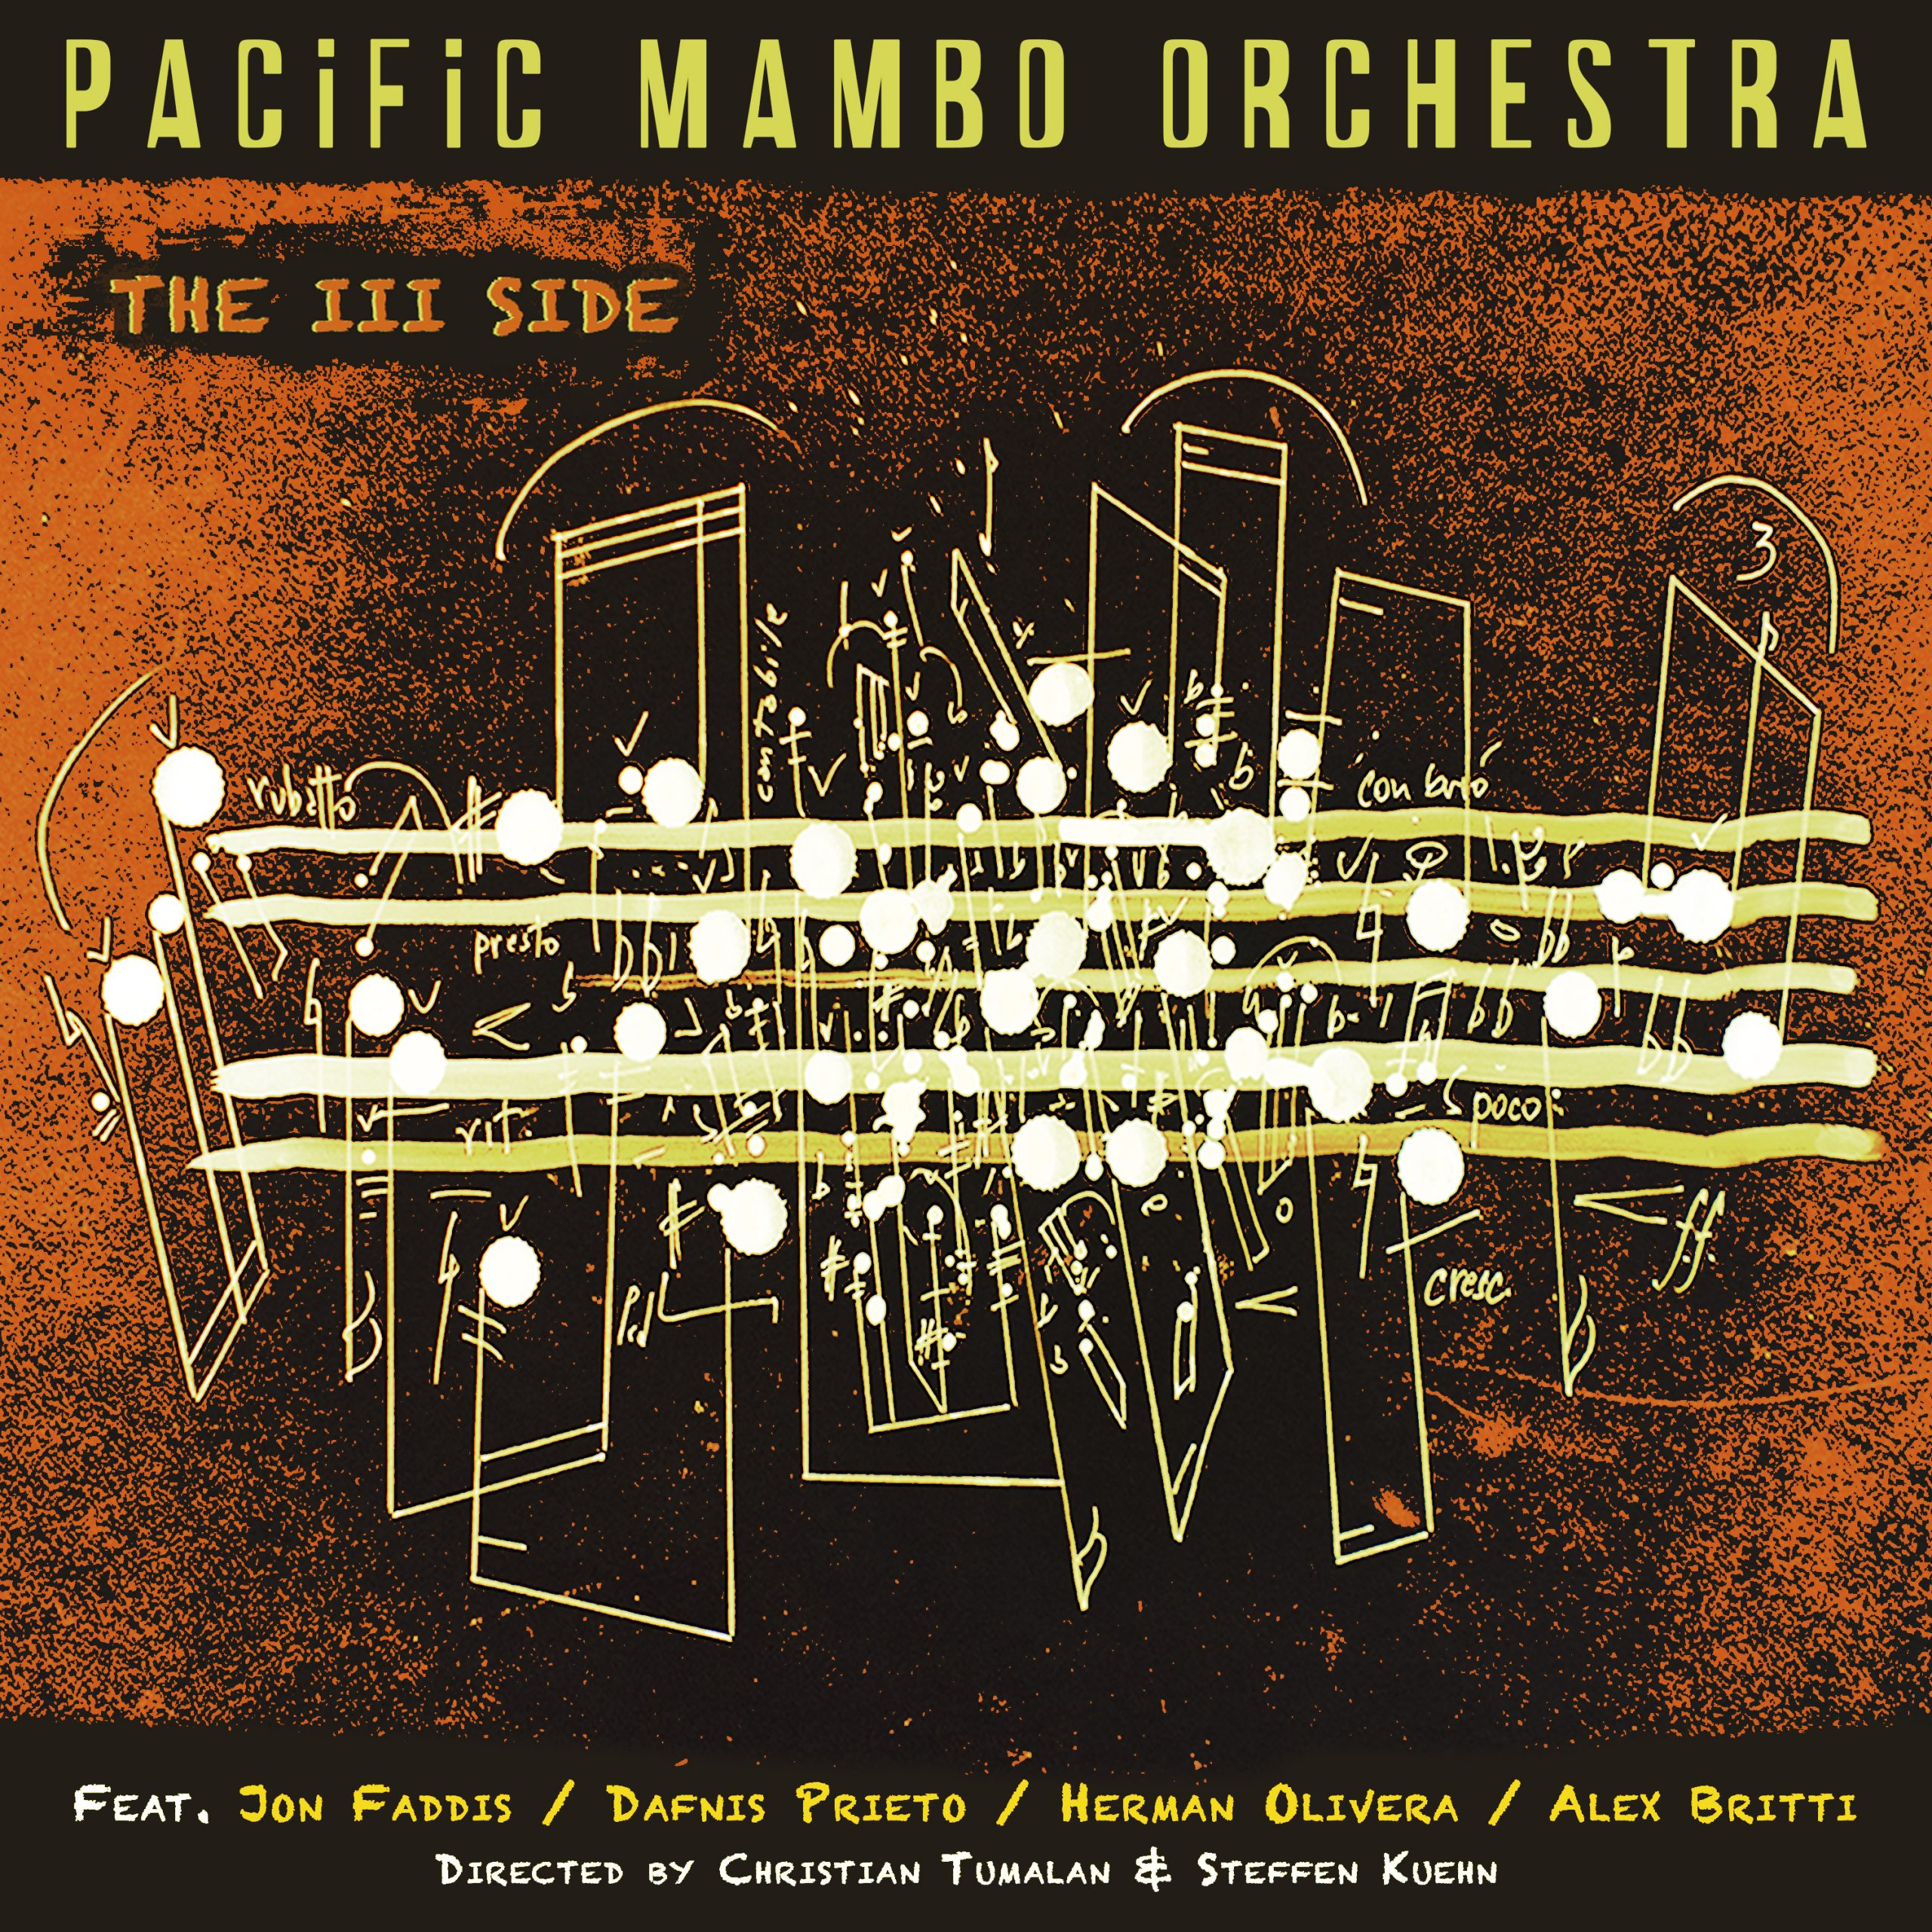 NEW RELEASE: Pacific Mambo Orchestra's THE III SIDE is Available Now!